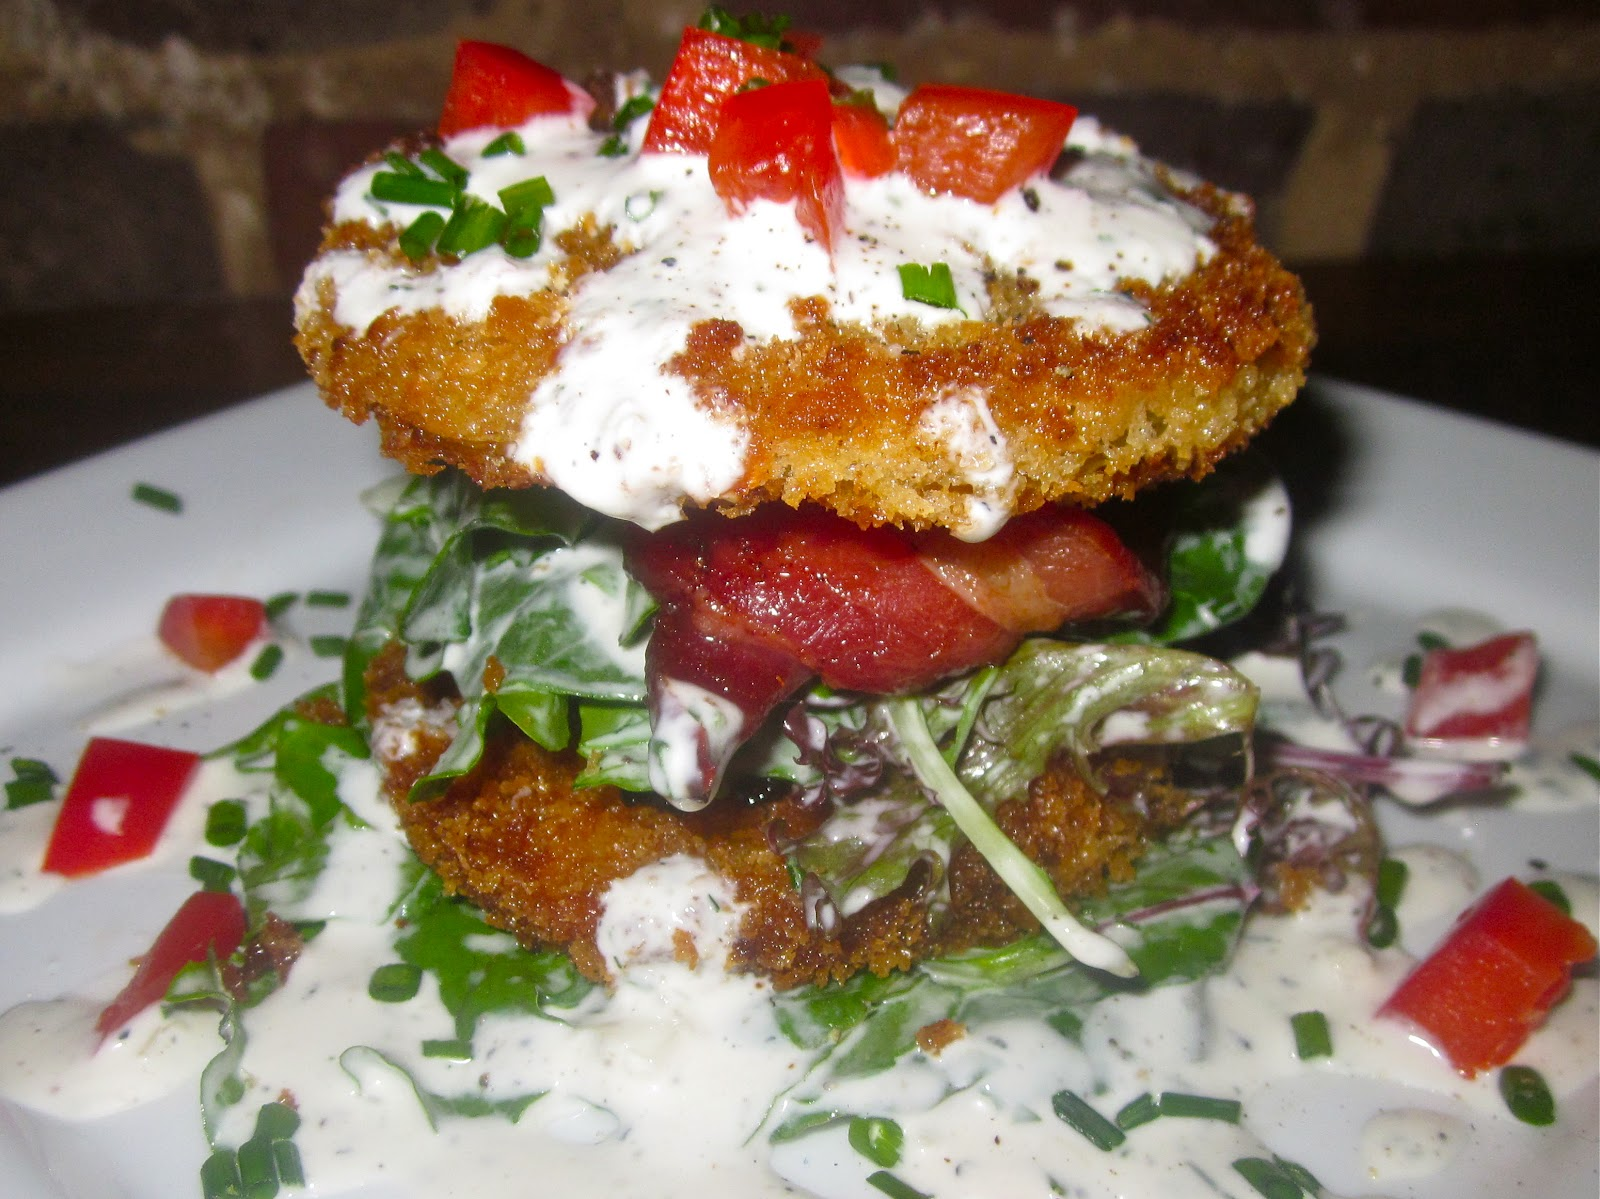 ... Green Tomato BLT Salad with Candied Bacon & Buttermilk Ranch Dressing